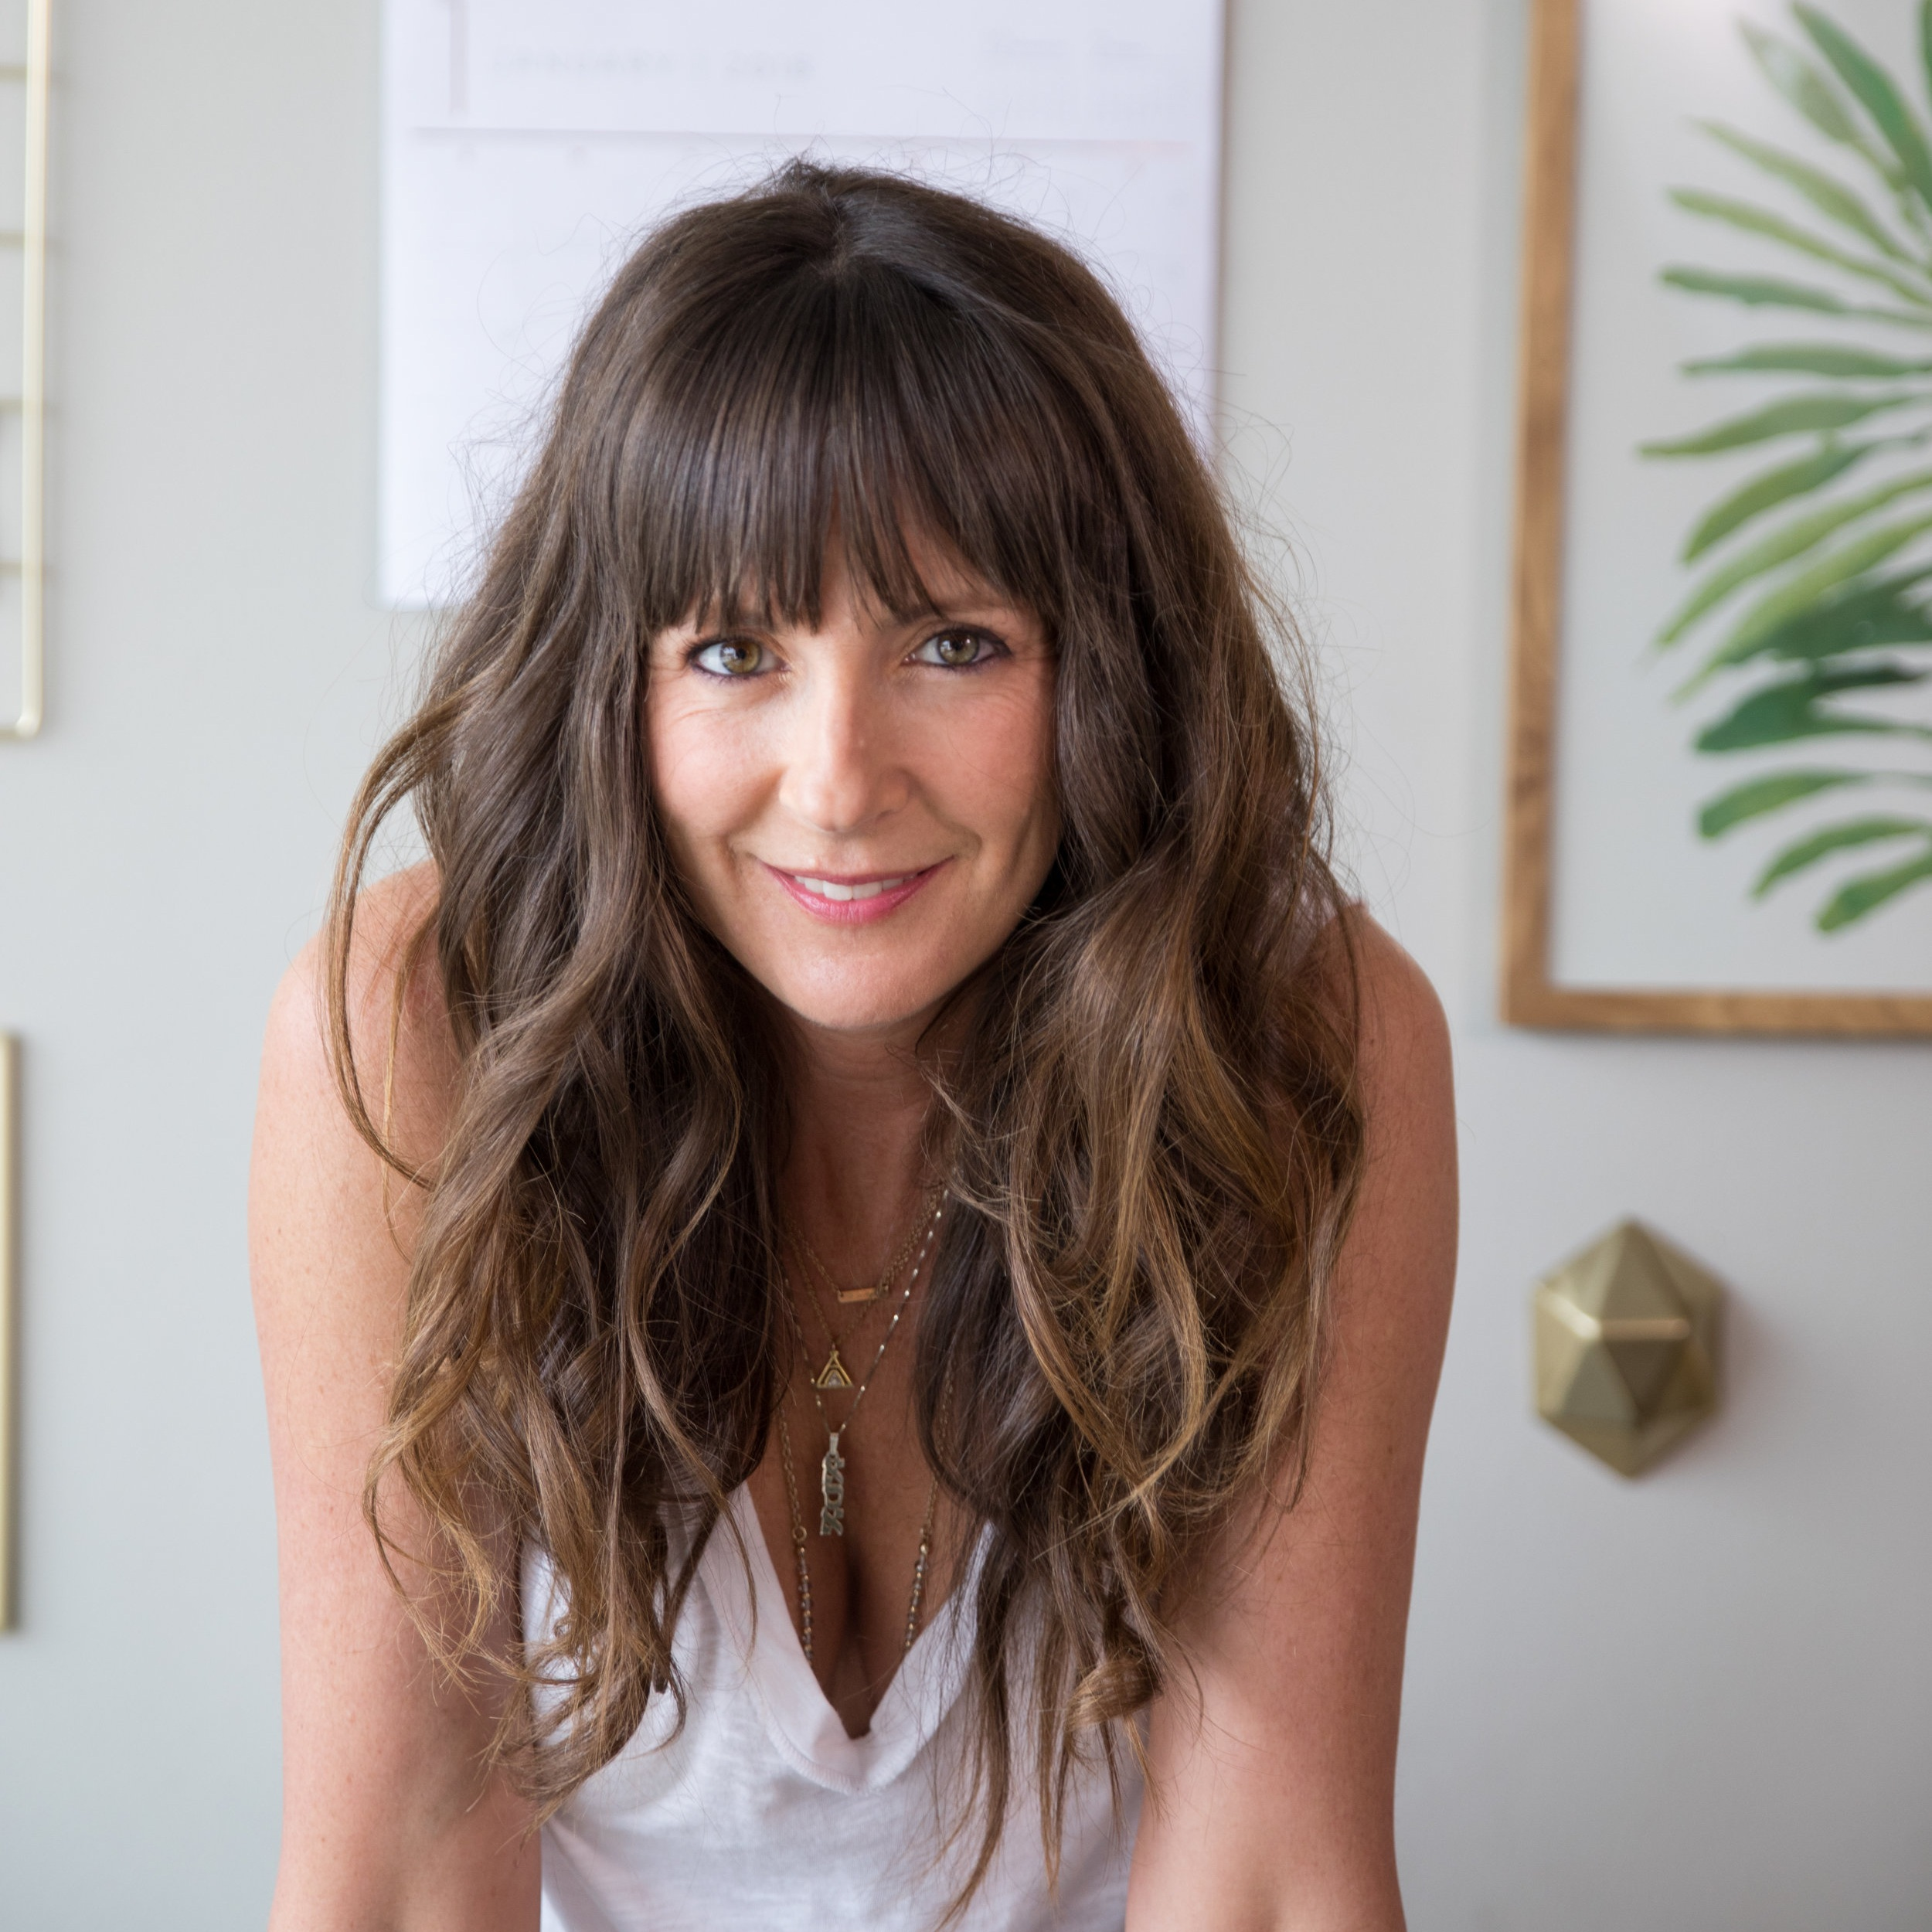 Today's guest: Tristan Coopersmith - Tristan Coopersmith is a licensed psychotherapist based in California who specializes in CBT, Mindfulness, EMDR and narrative therapies. Her credentials, knowledge and extensive experience getting to the ROOTS of what keeps us stuck, aids in the process of healing and releasing past wounds effectively, so that her clients can transform into vibrant, free, self-loving people, able to create life on their own terms, healthily and abundantly.